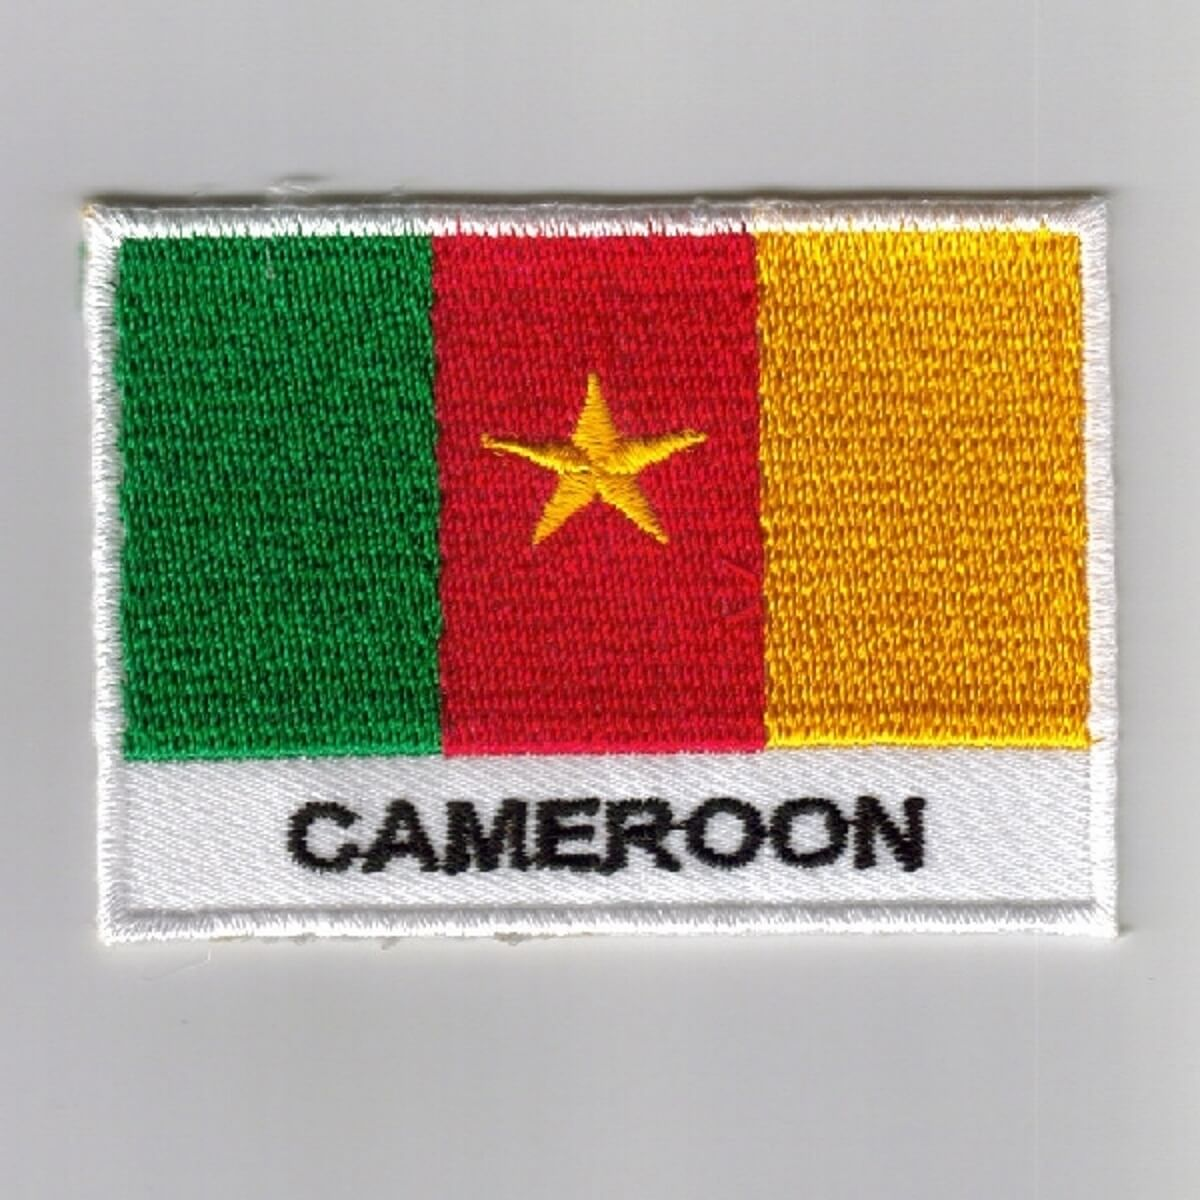 Cameroon Flag embroidered patches